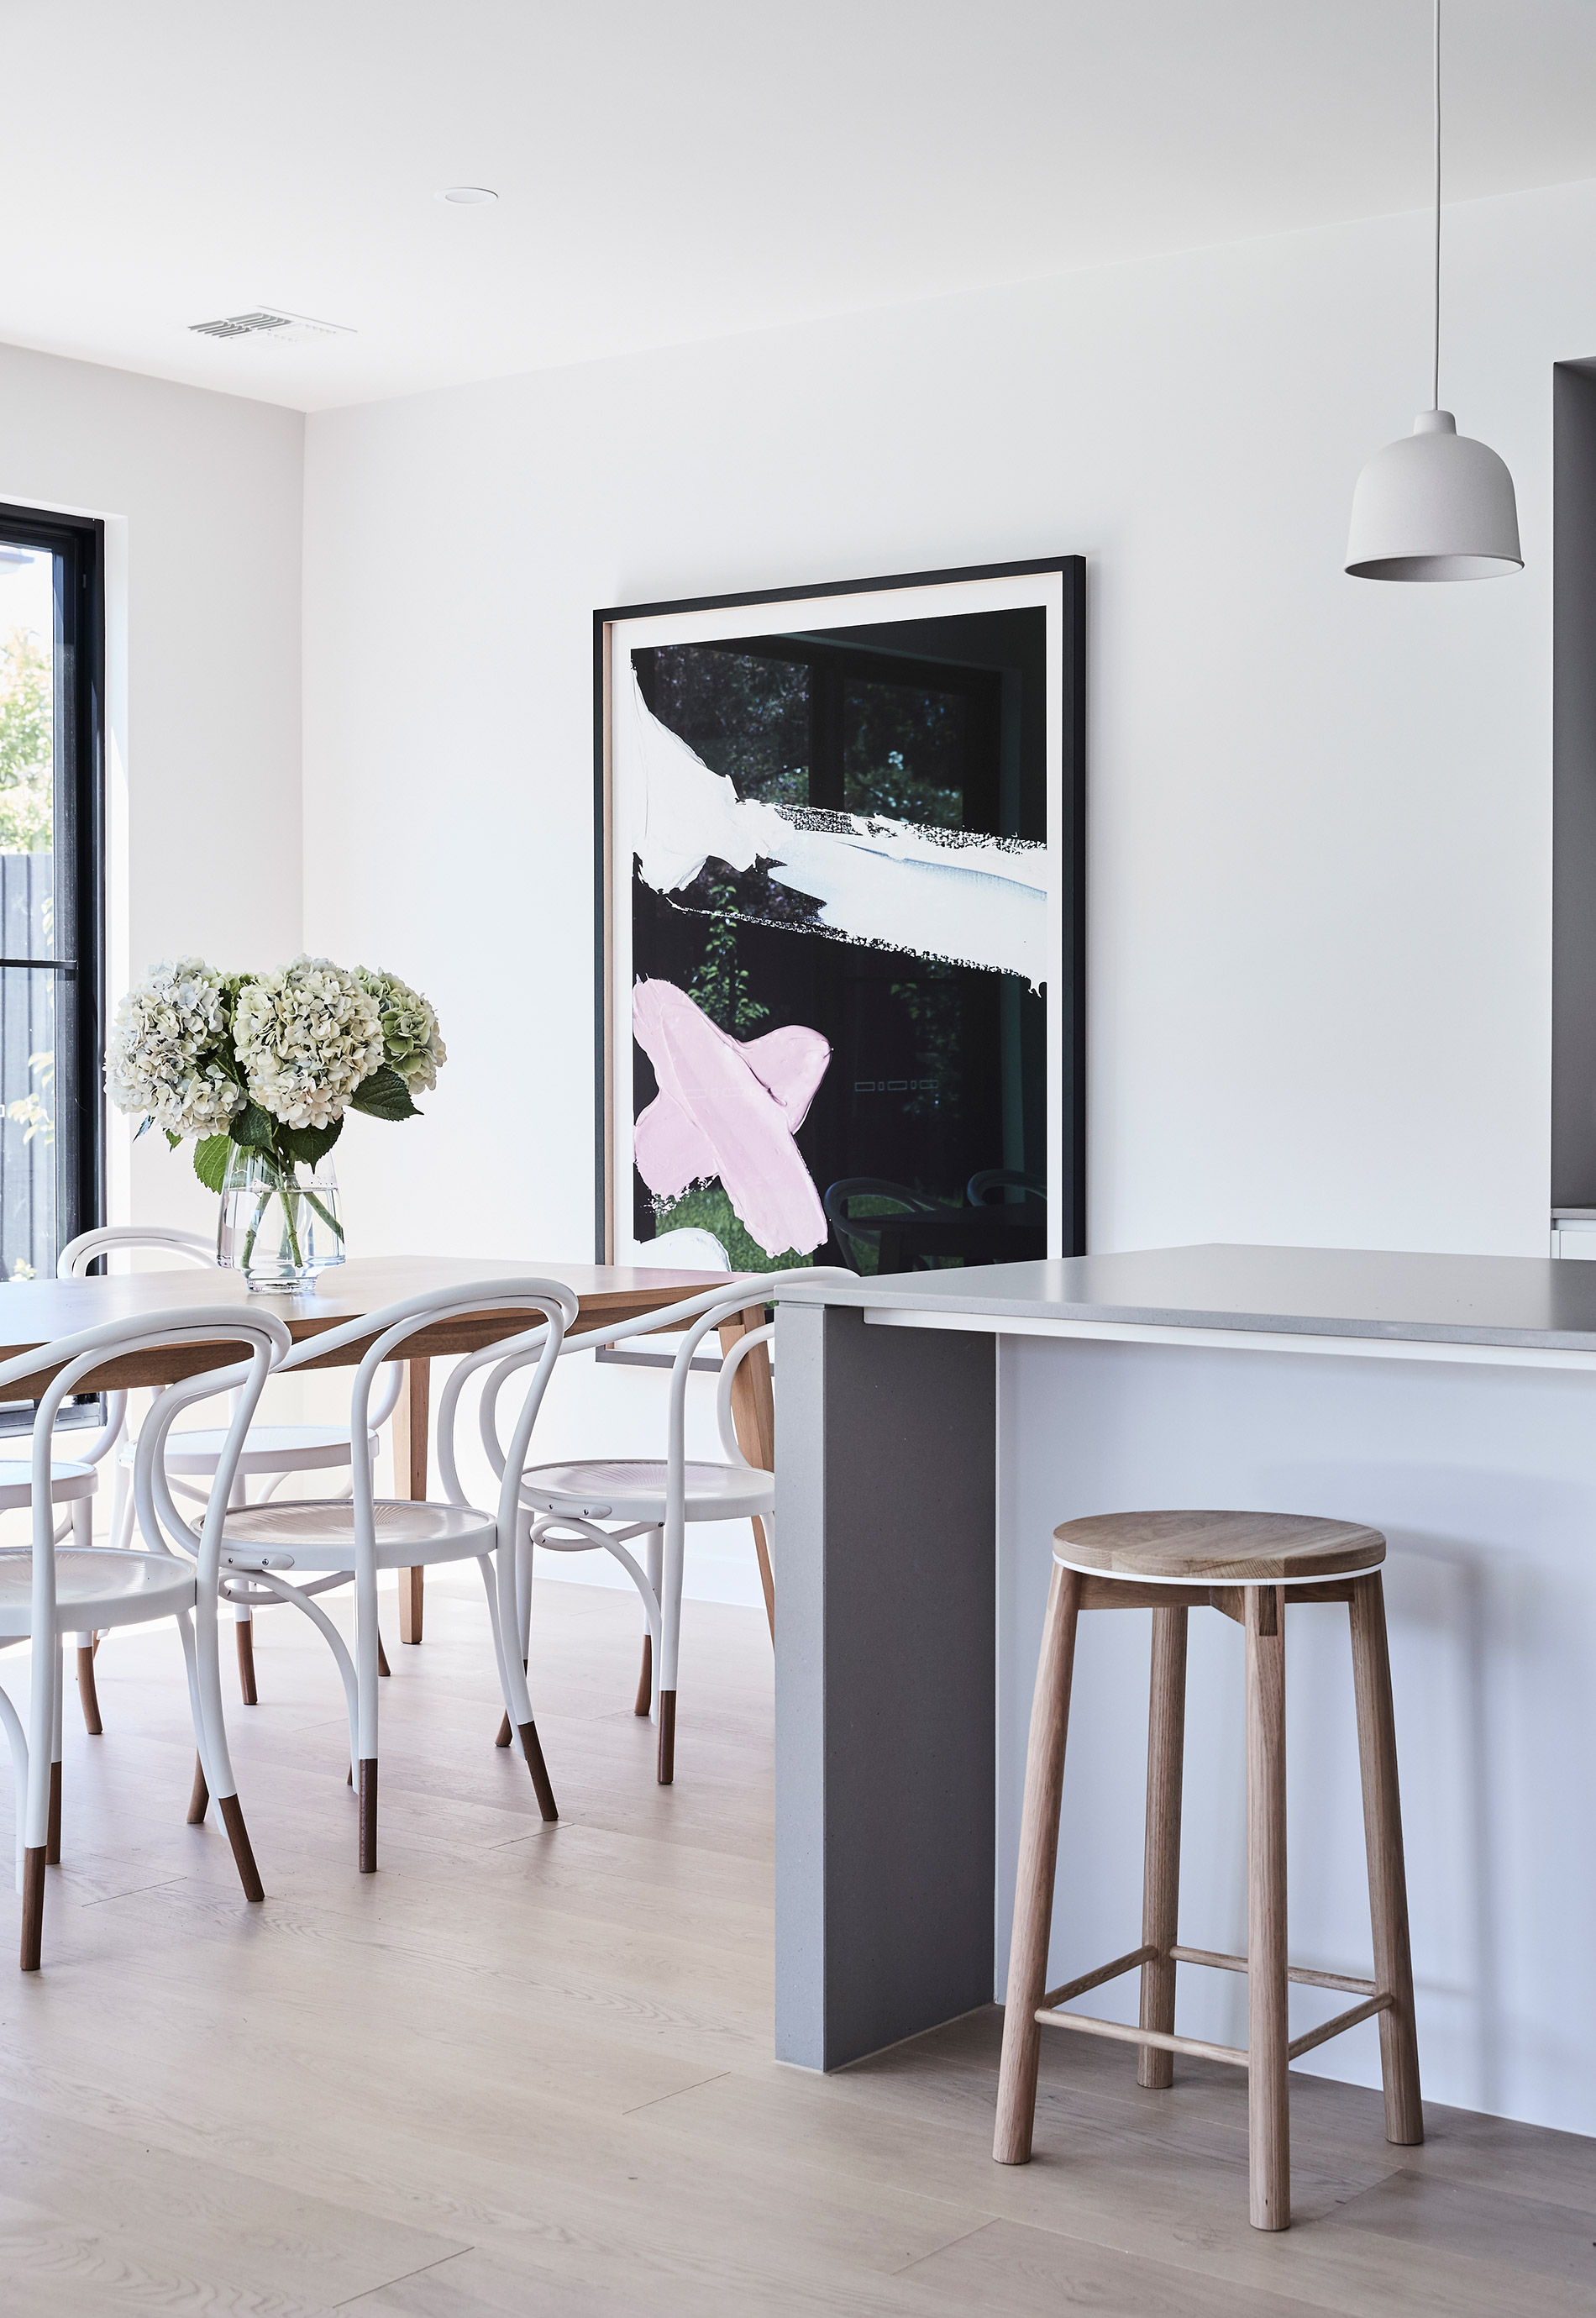 Photography   James Geer  /  Styling   Aimee Tarulli for Thomas Archer Homes